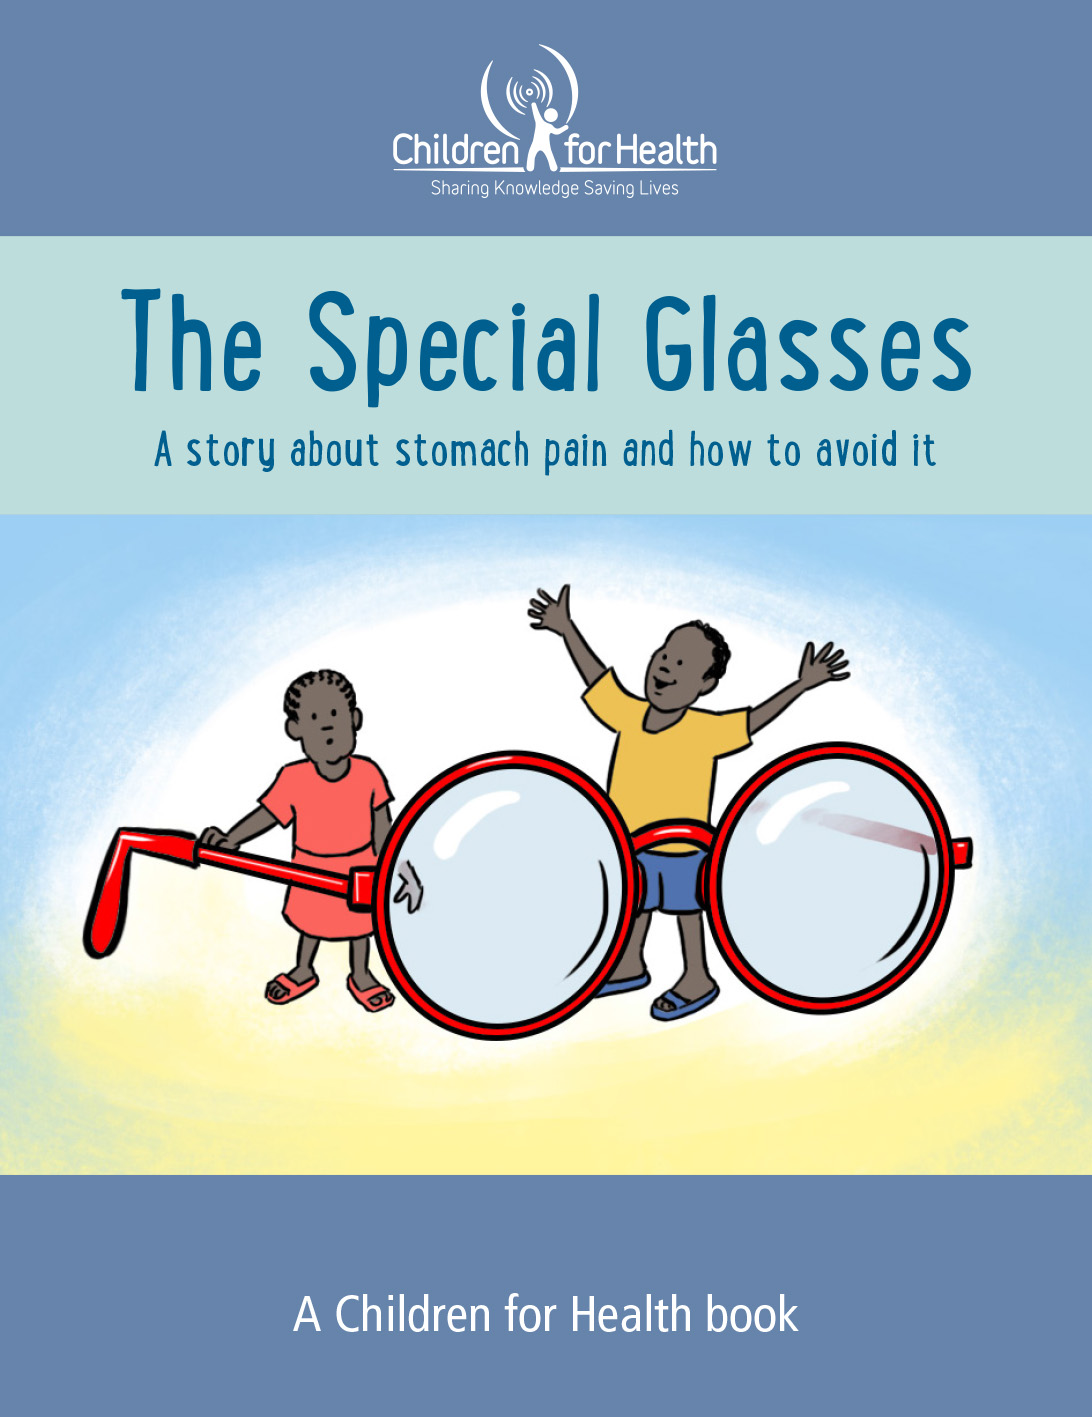 The Special Glasses book cover, it has a giant pair of reading glasses with two children standing next to them. One is touching the arm of the glasses and the other child has their arms raised above their head in a V.